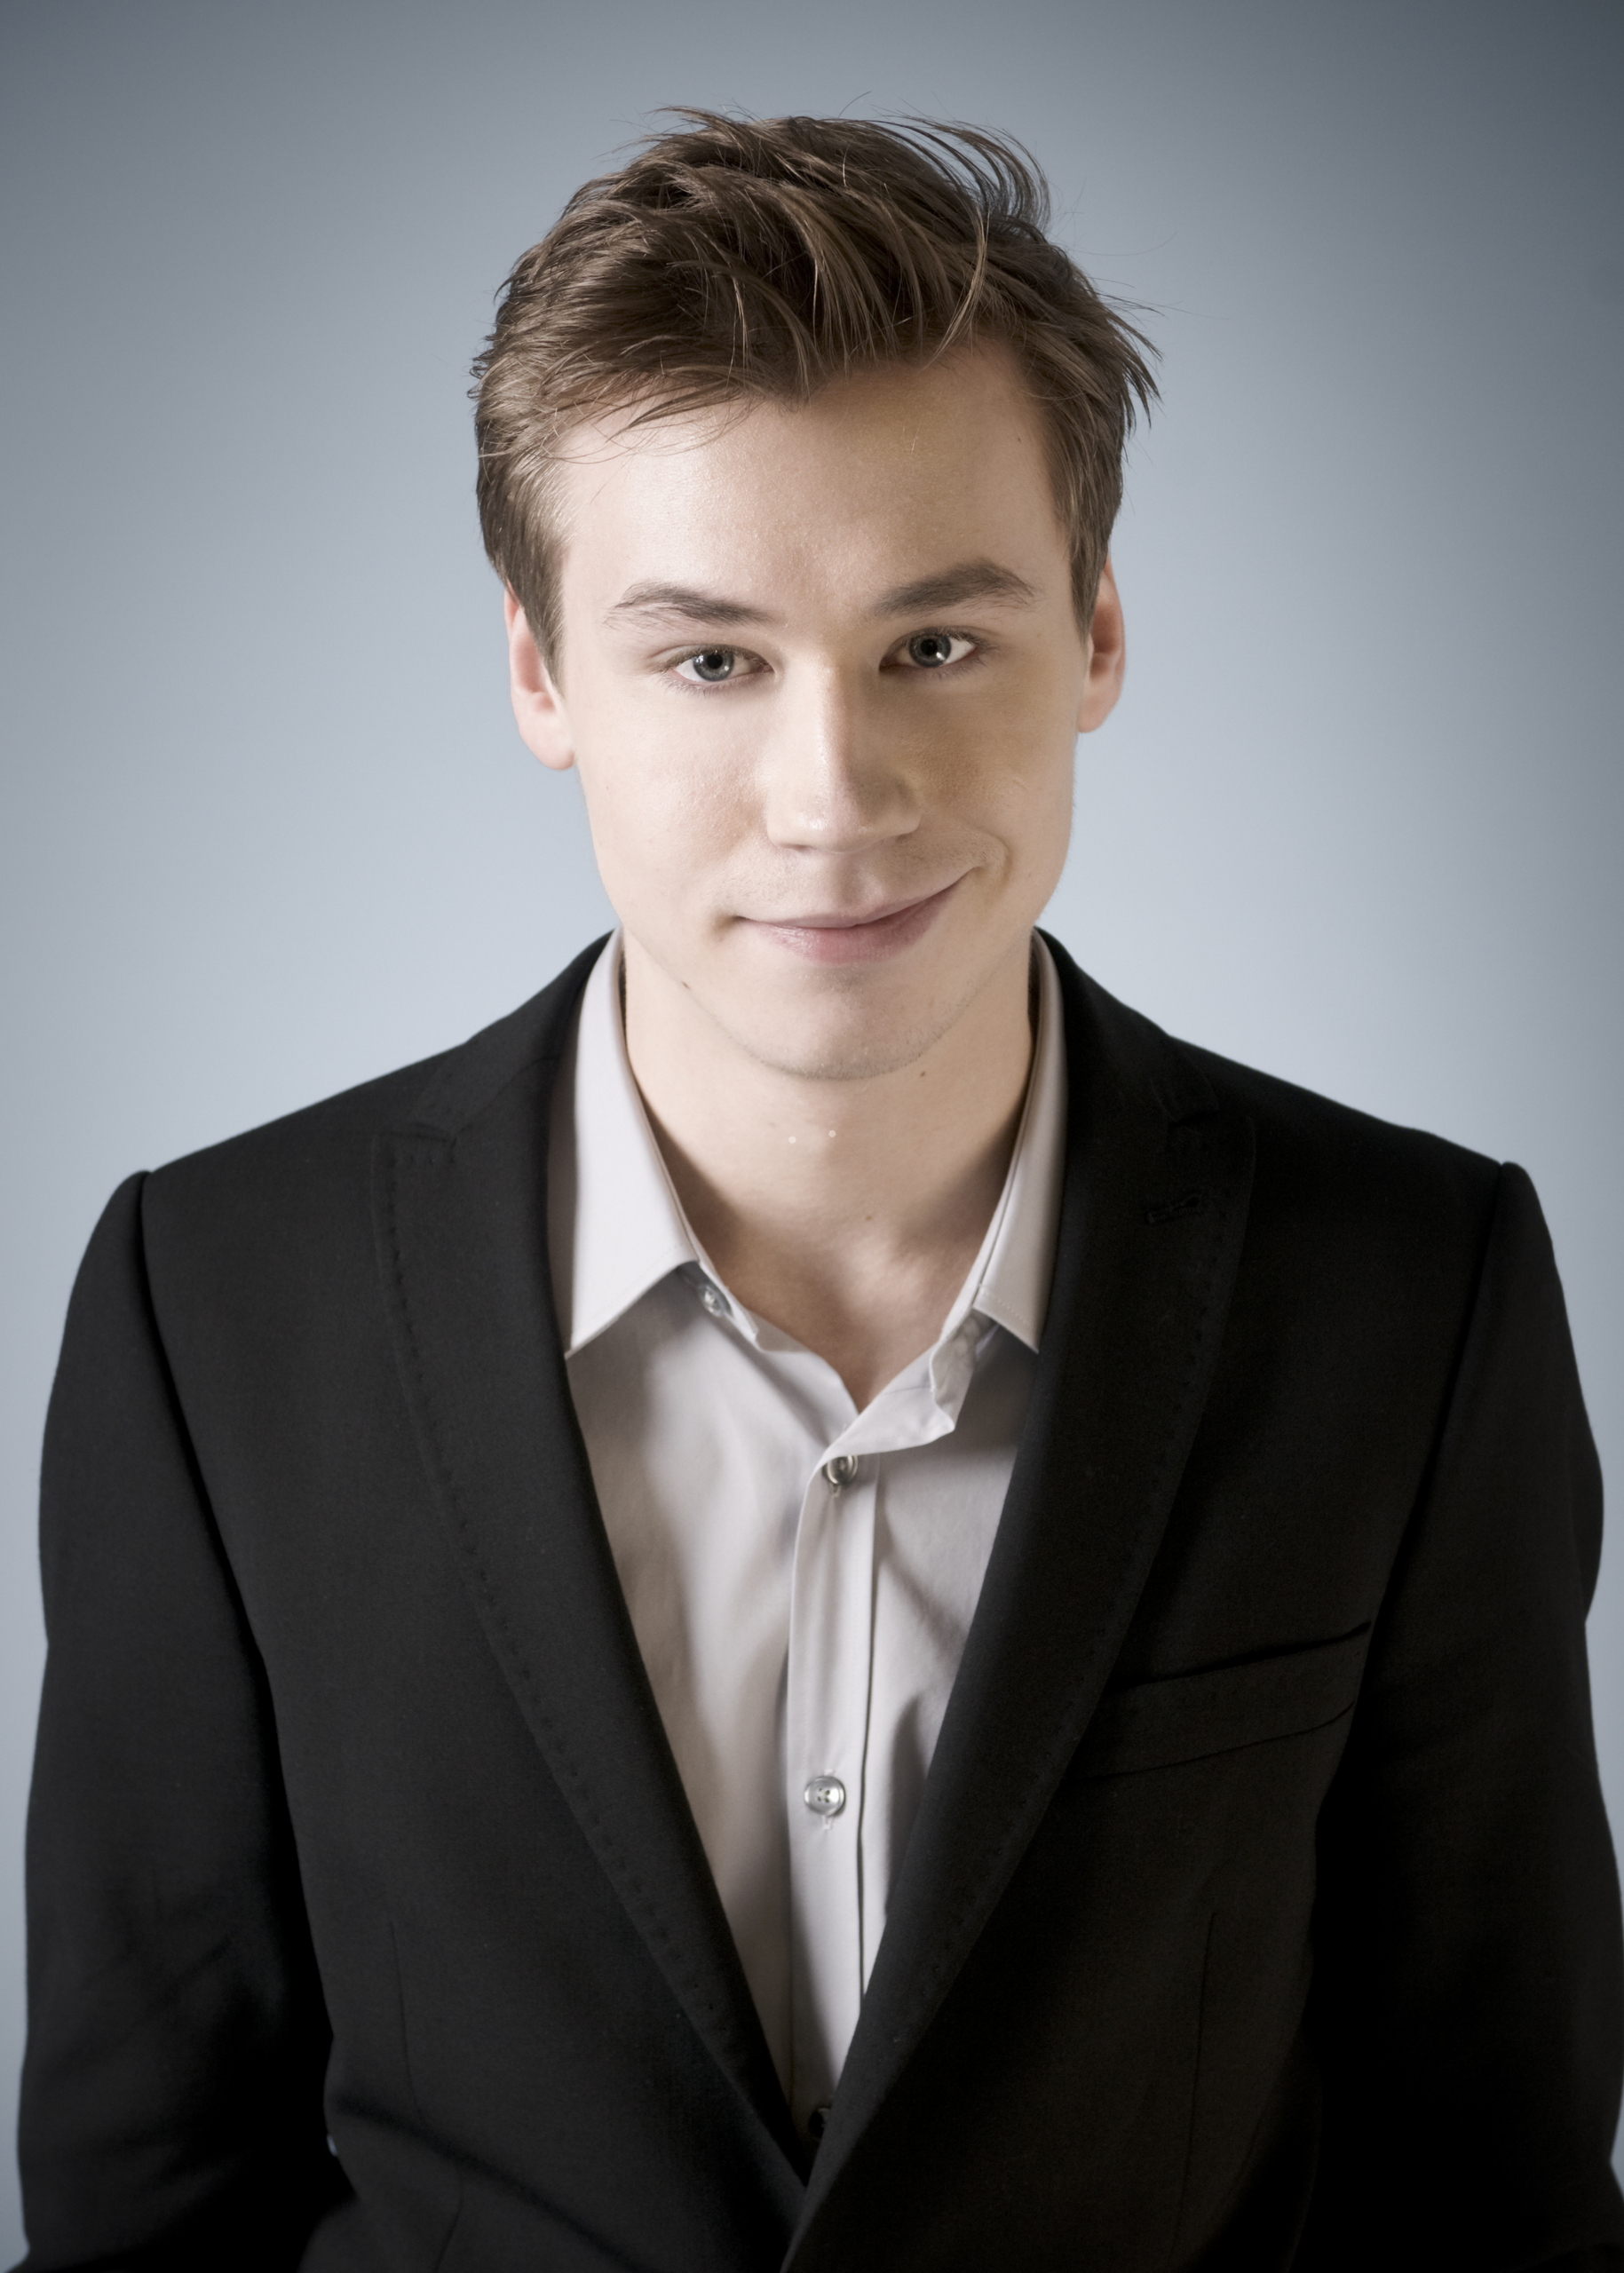 David Kross earned a  million dollar salary - leaving the net worth at 1 million in 2017